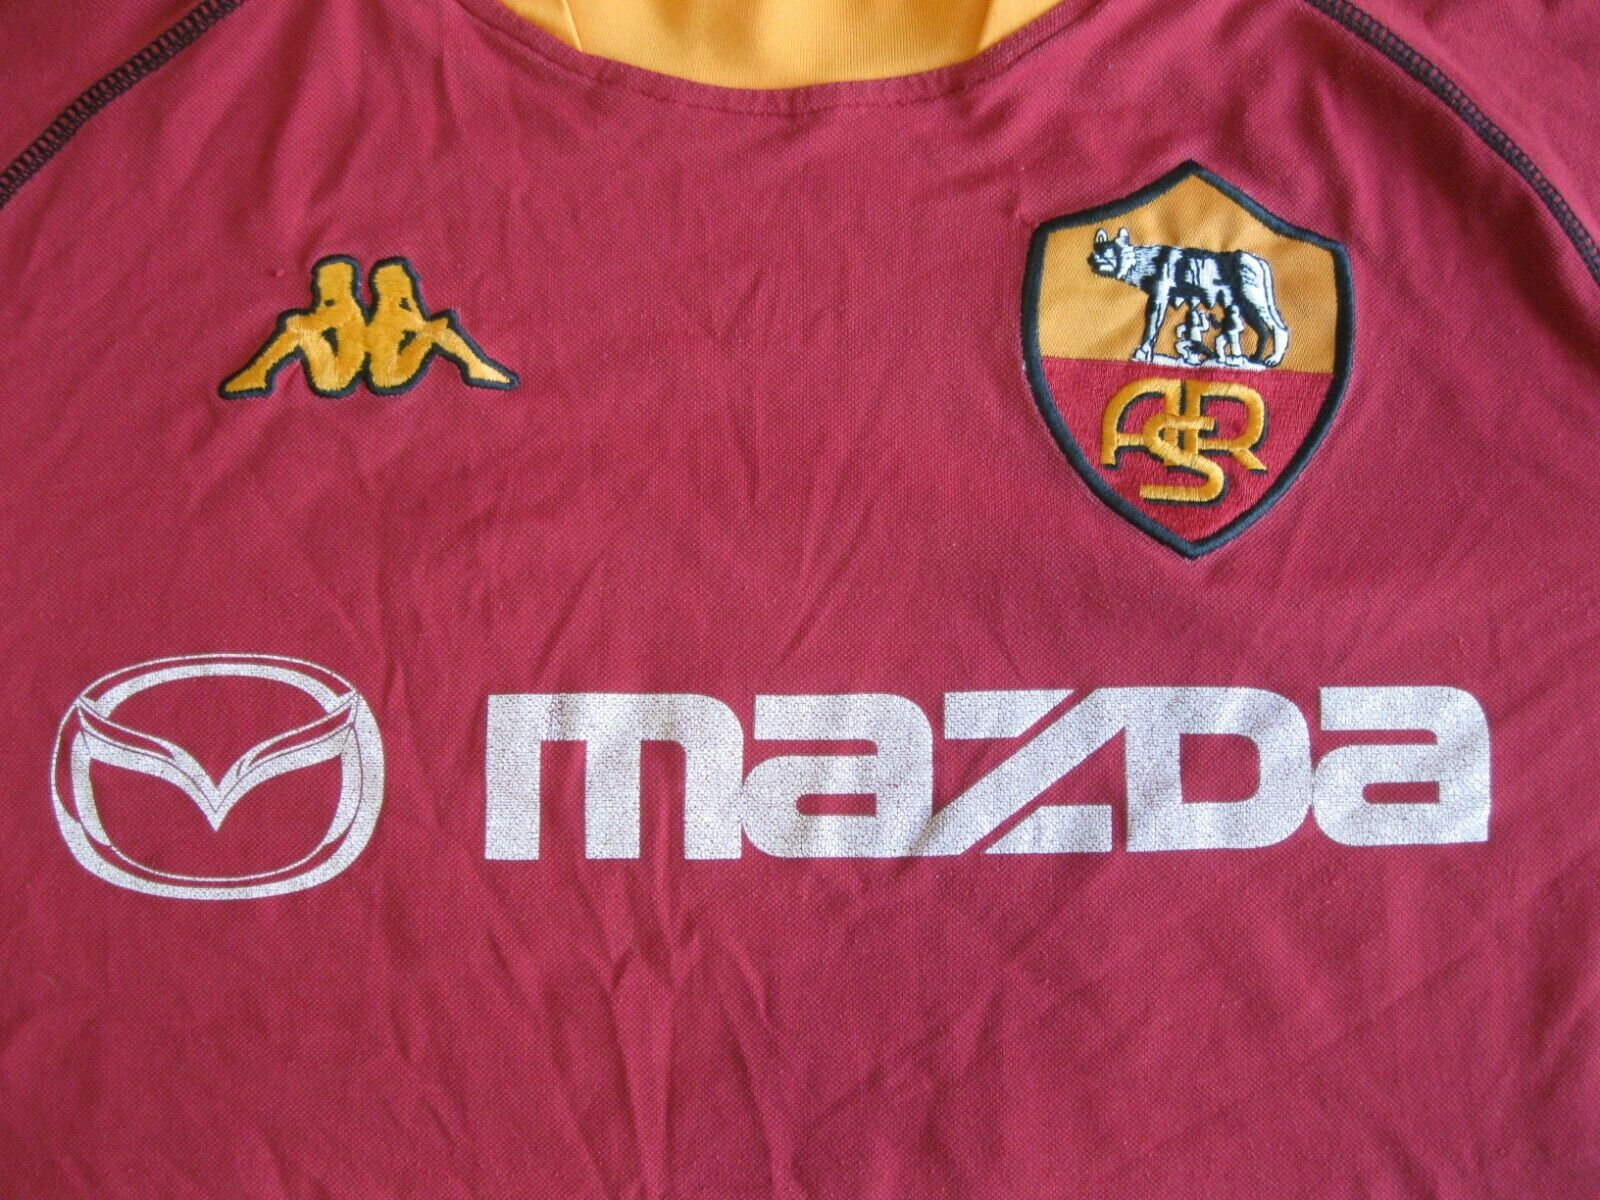 AS Roma 2002/2003 Home Size 2XL Kappa jersey